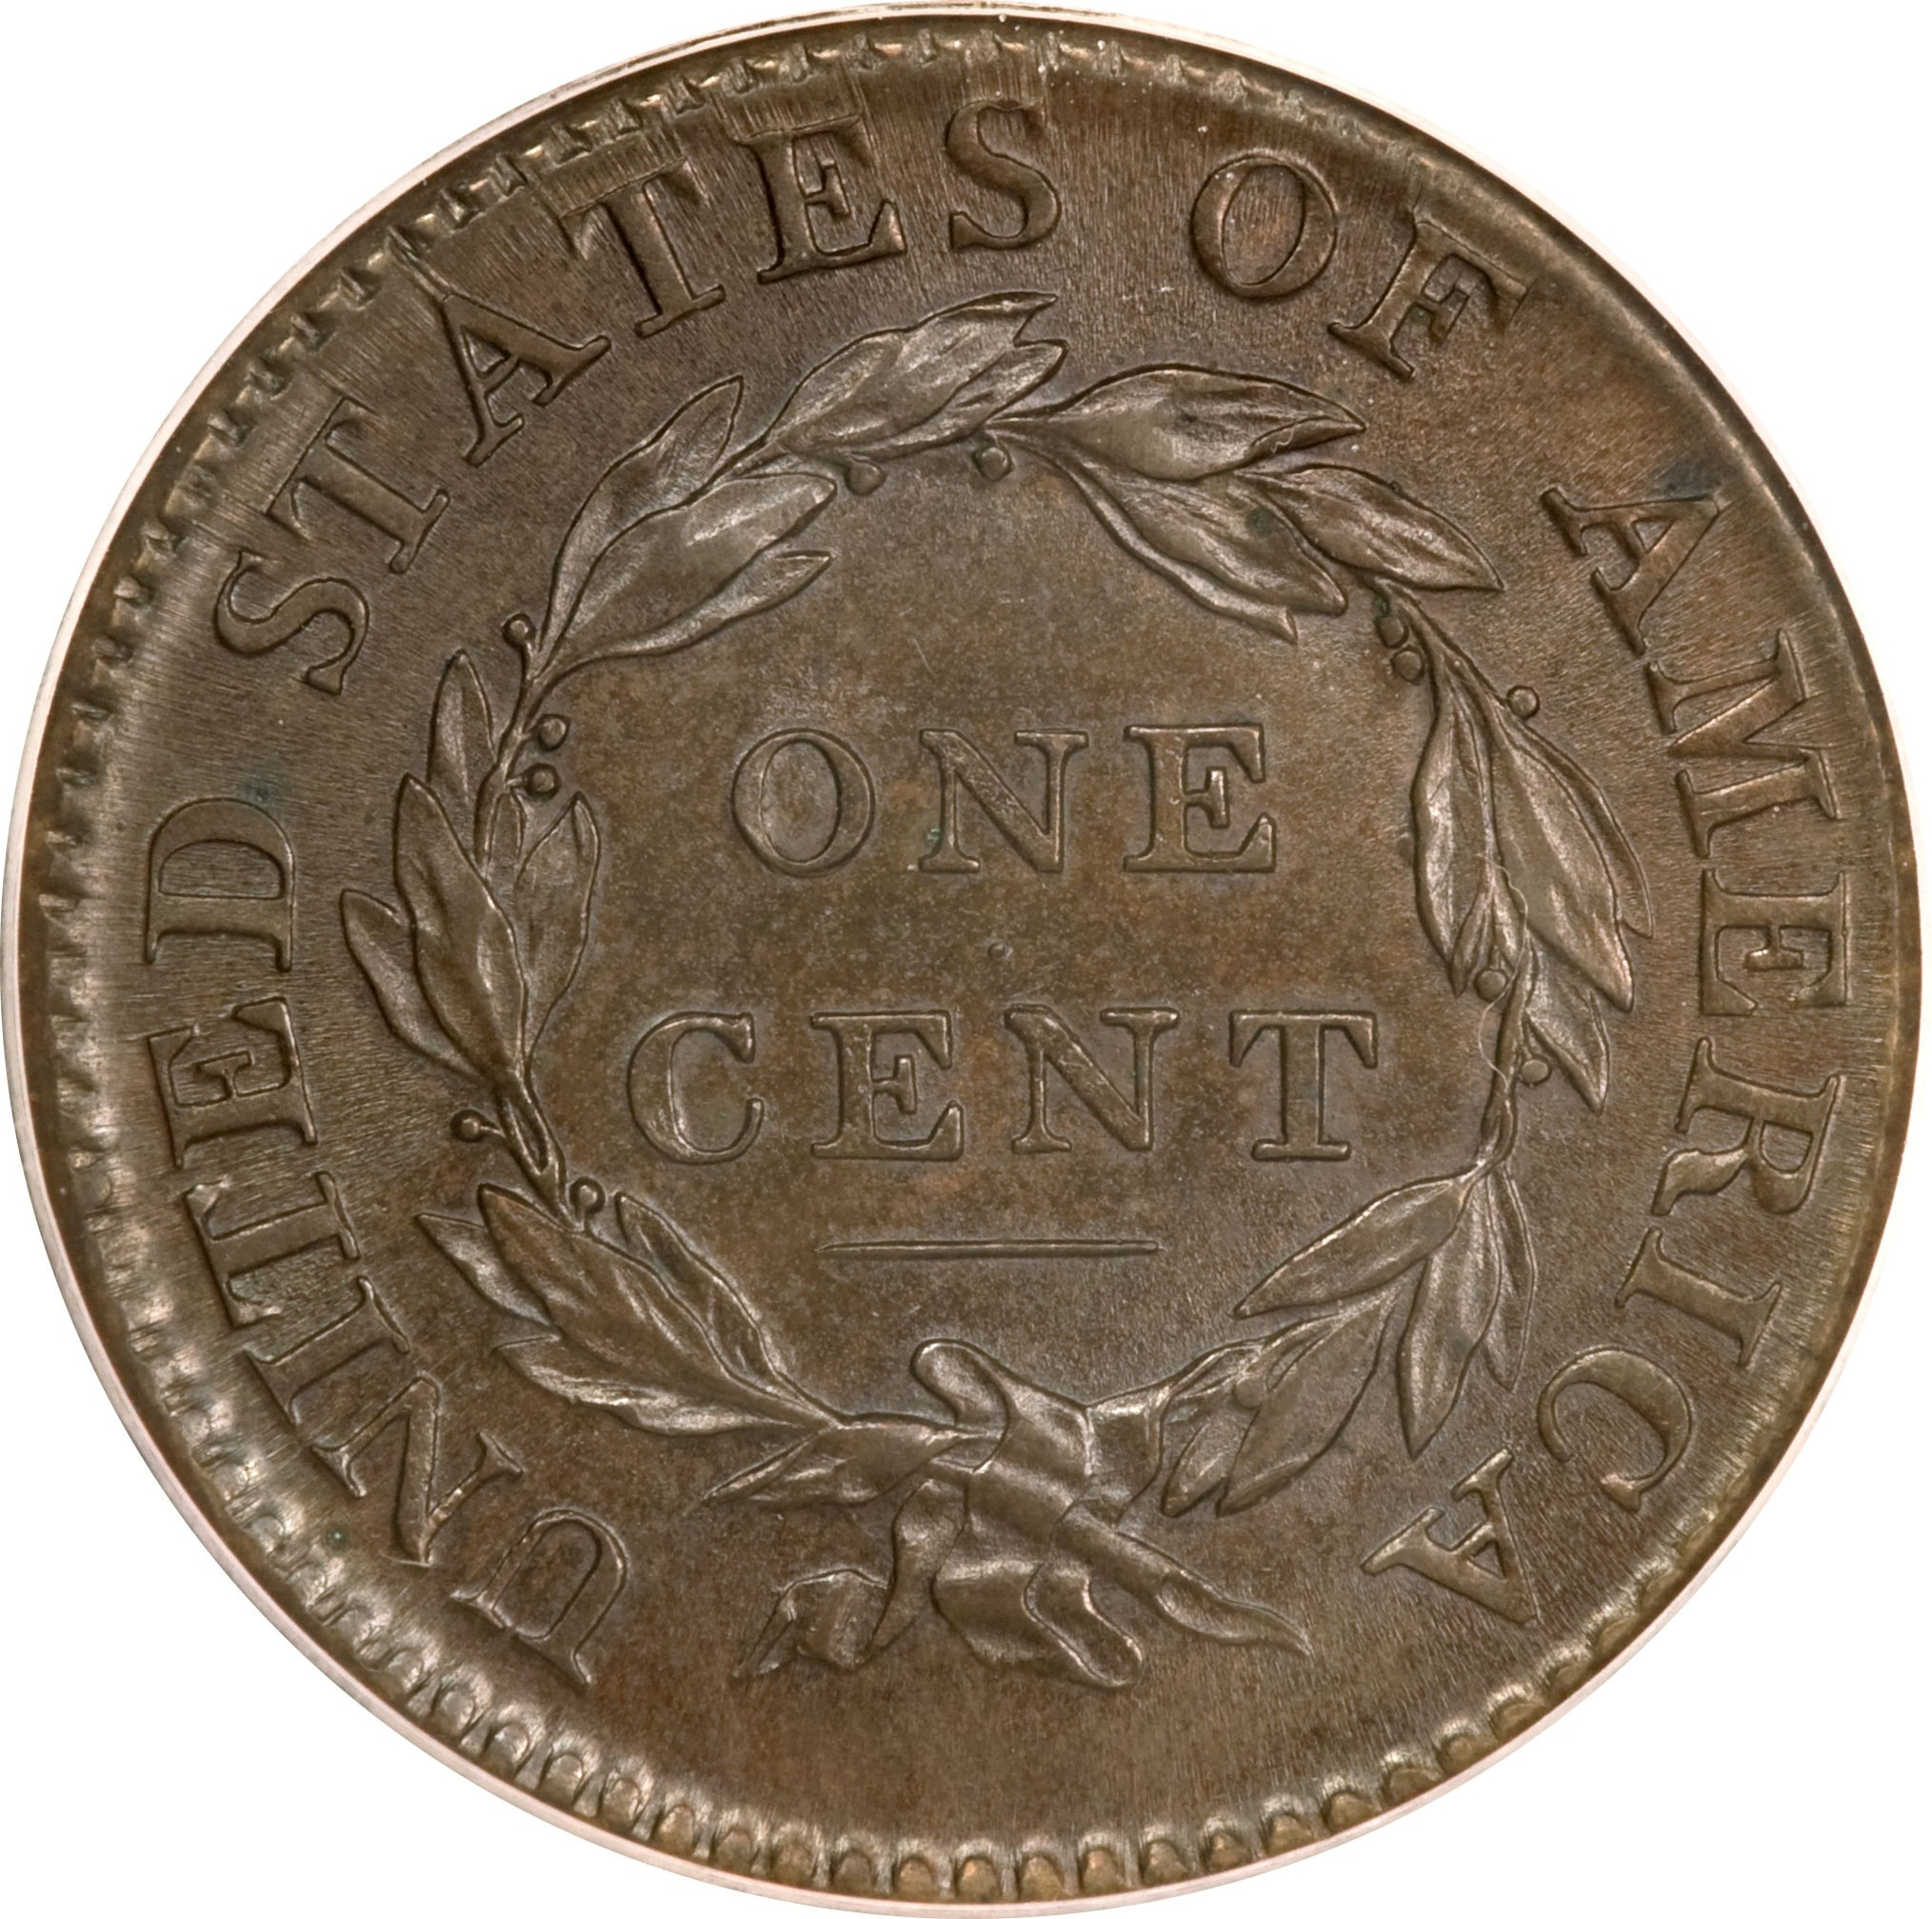 United States 1 Cent (1808-1814 Capped Bust - Classic Head Cent)